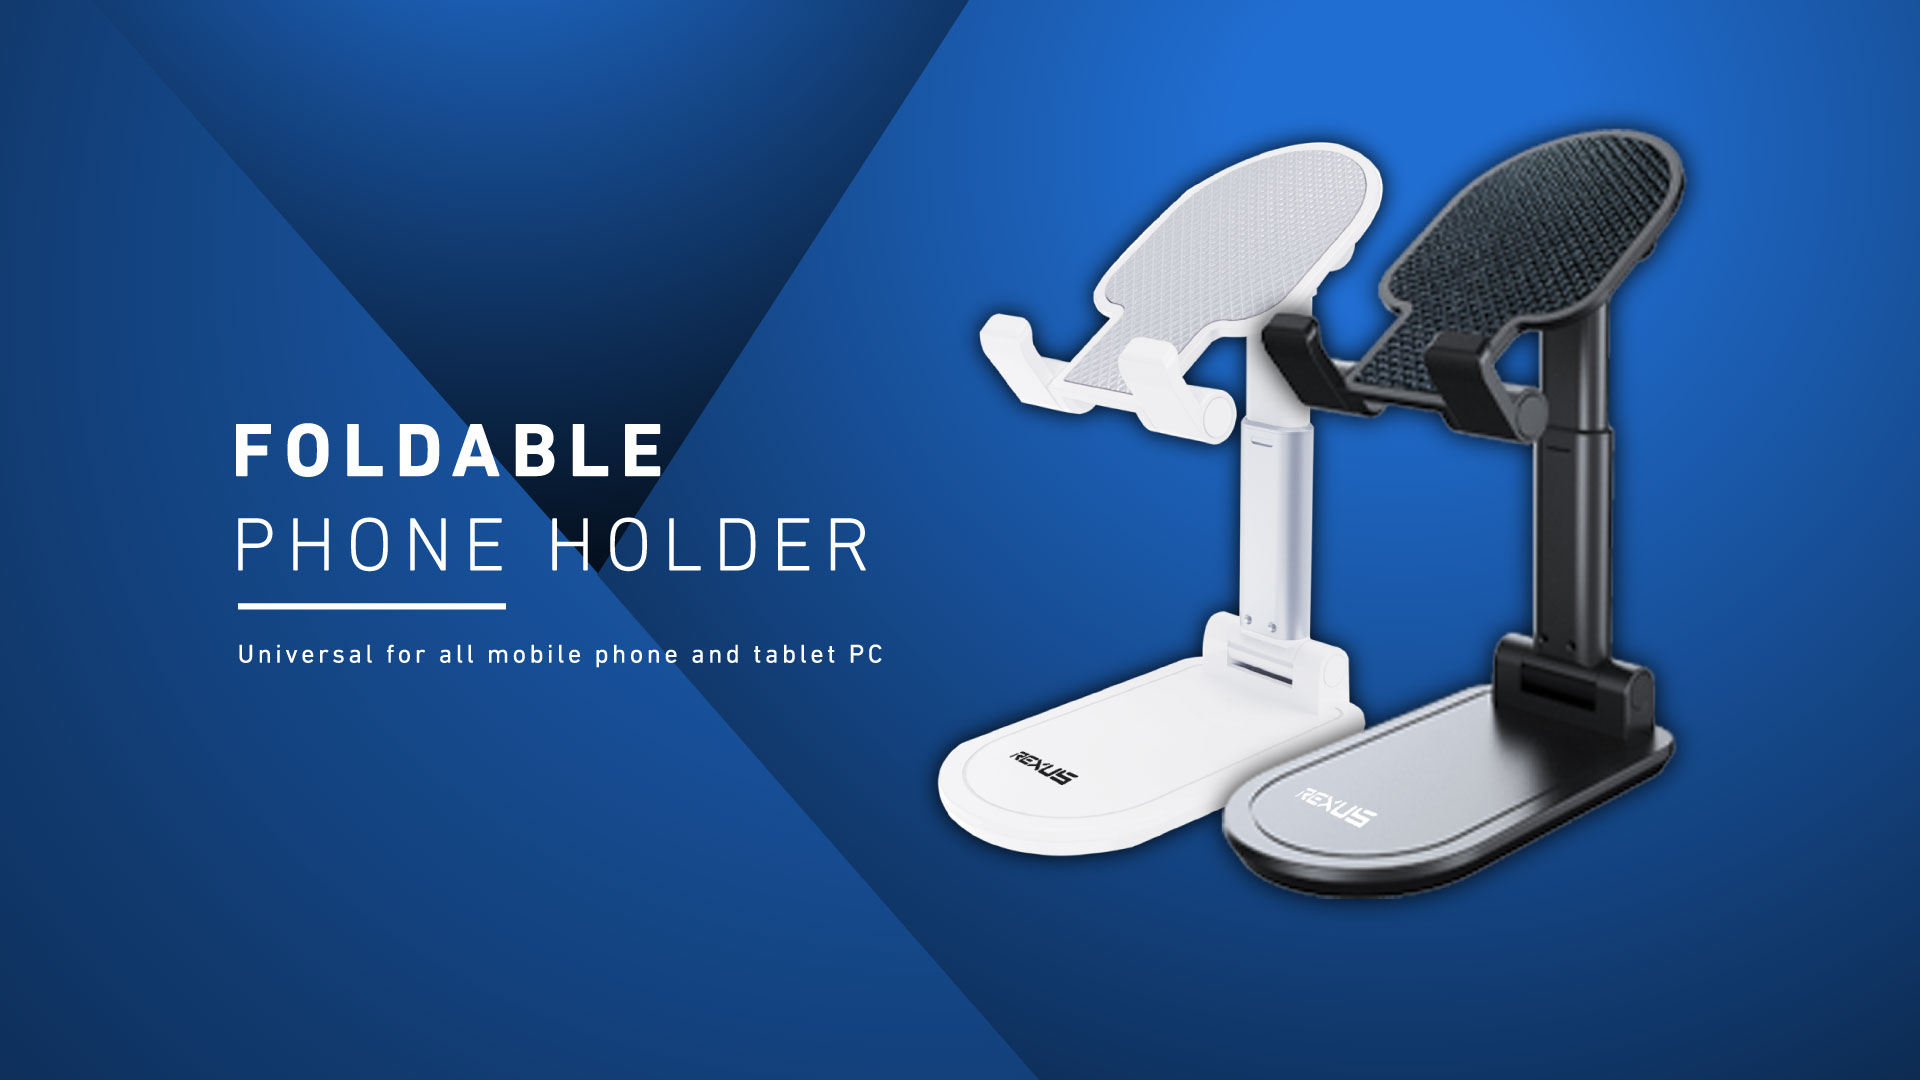 phone holder Rexus Foldable Phone Holder FP01 WL FP01 01